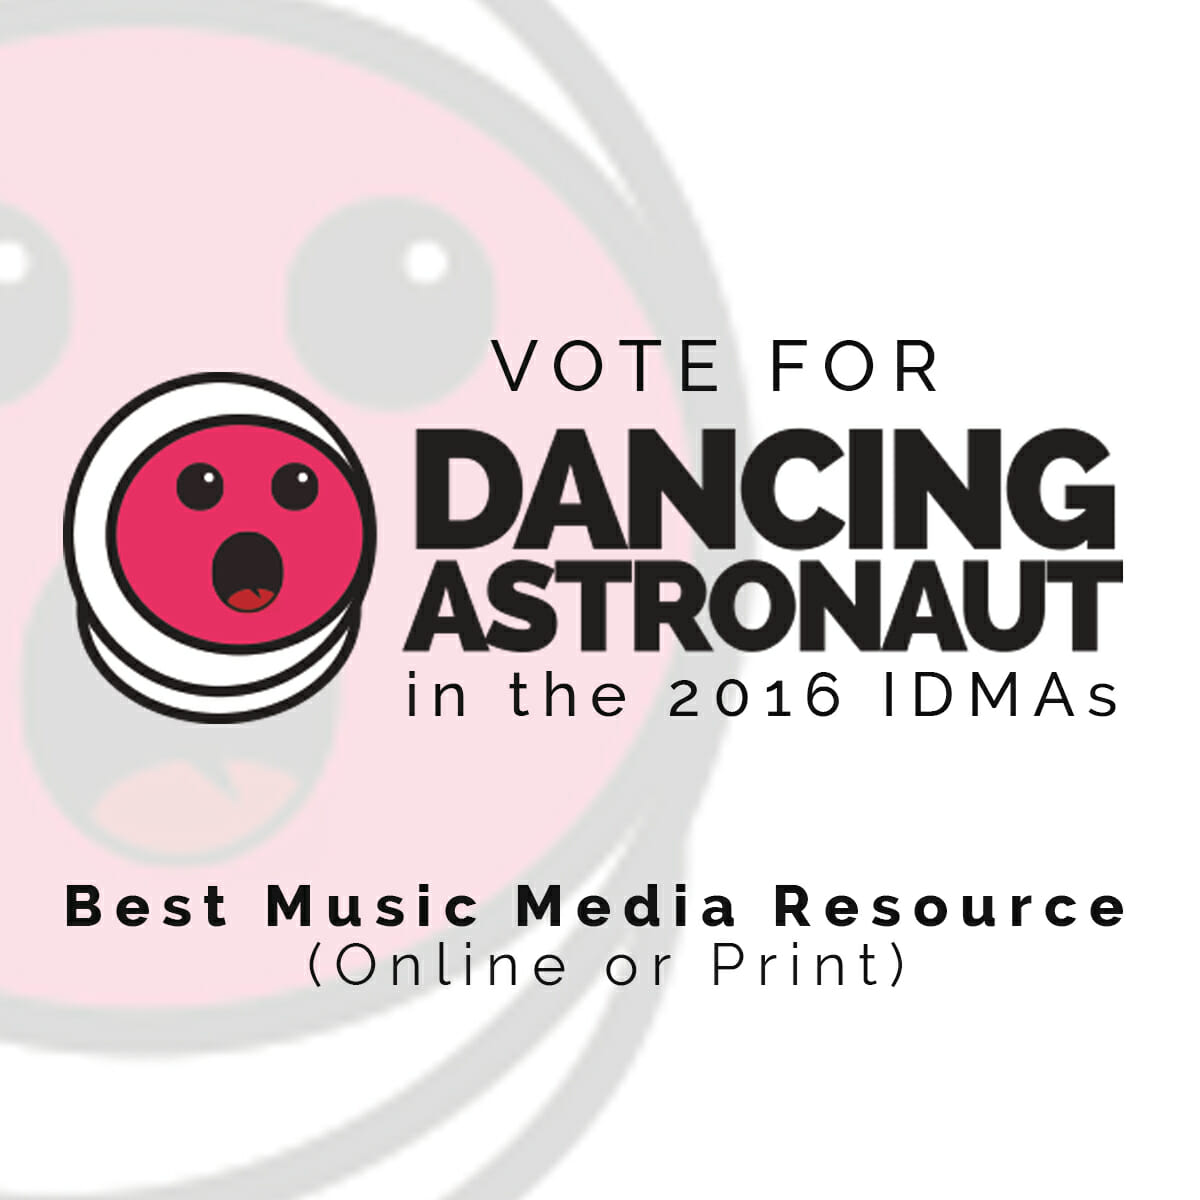 Vote for Dancing Astronaut in the 2016 IDMAsDA IDMA 2016